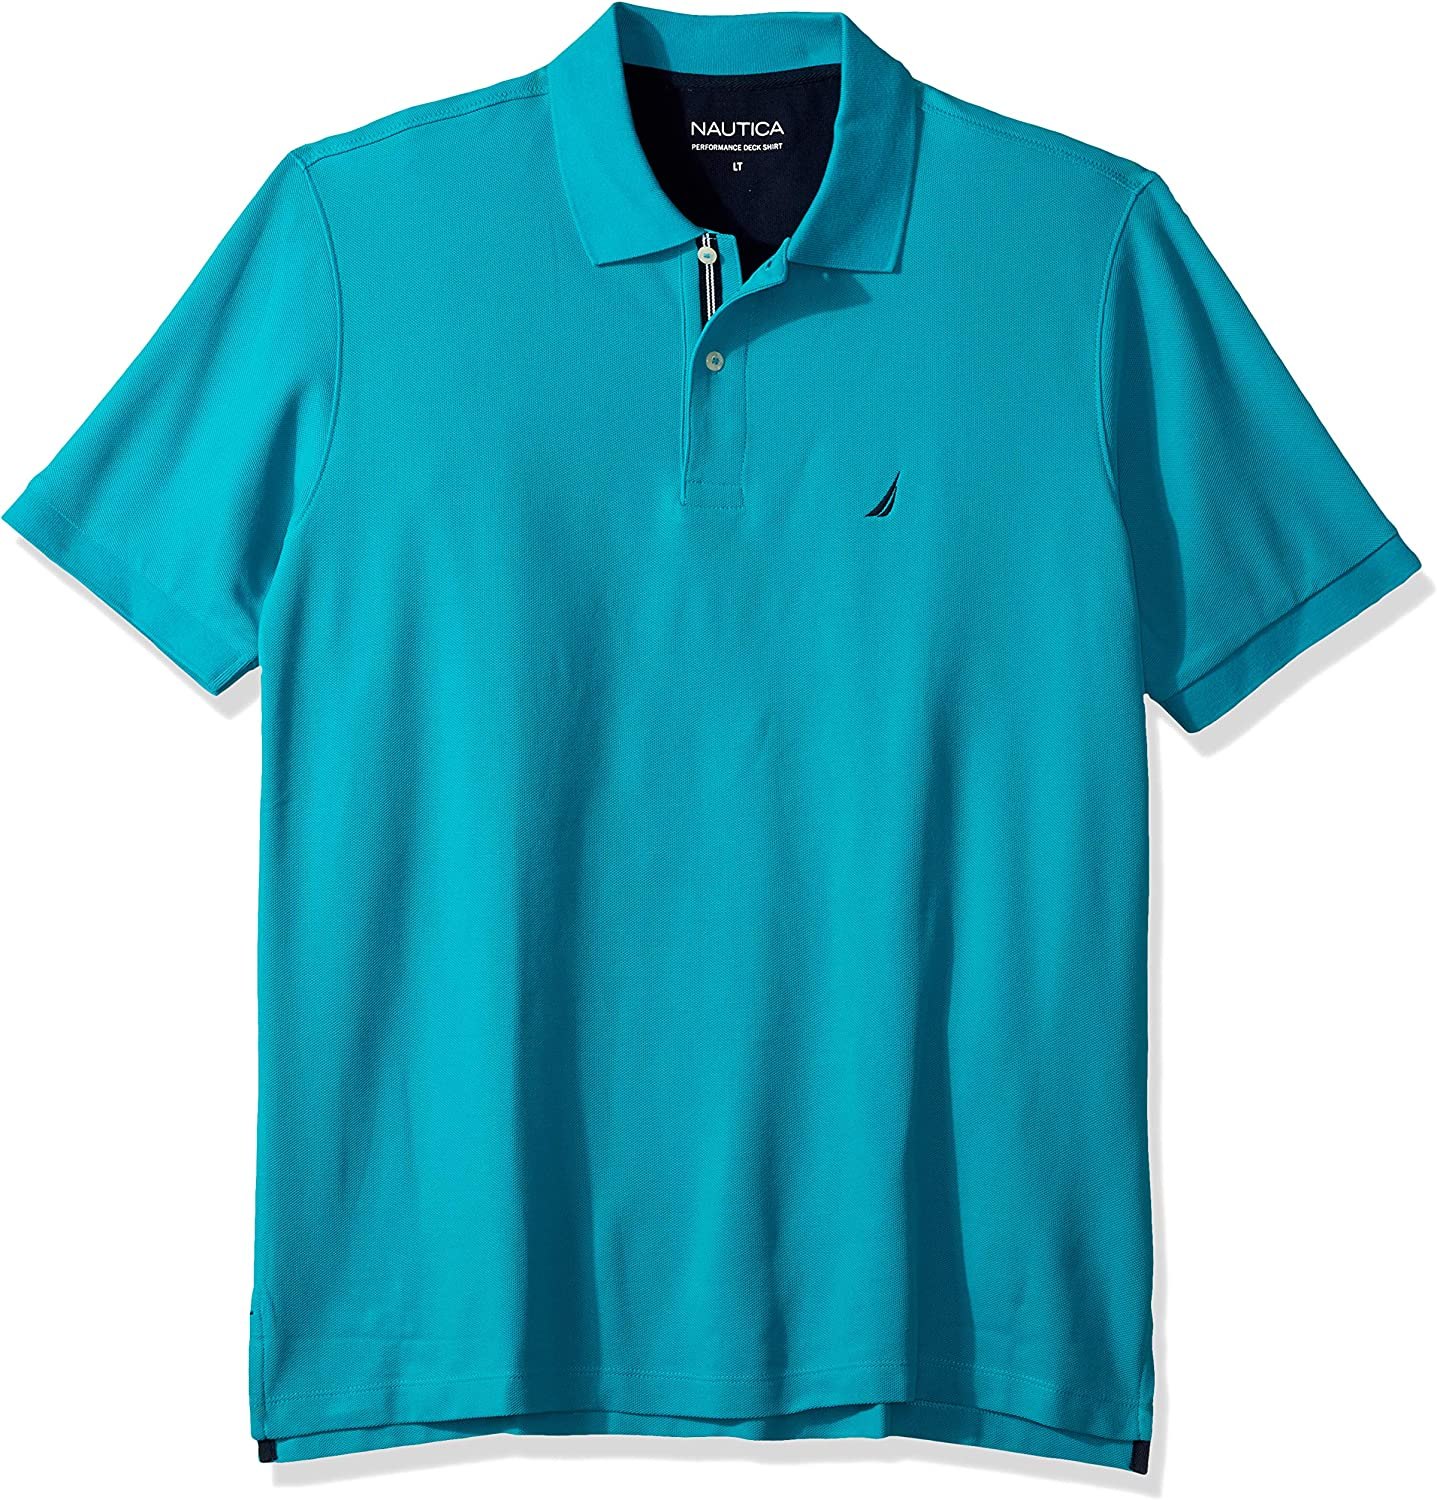 Nautica Men's Big and Tall Classic Sleeve Short Fit New item Perfor Solid Purchase